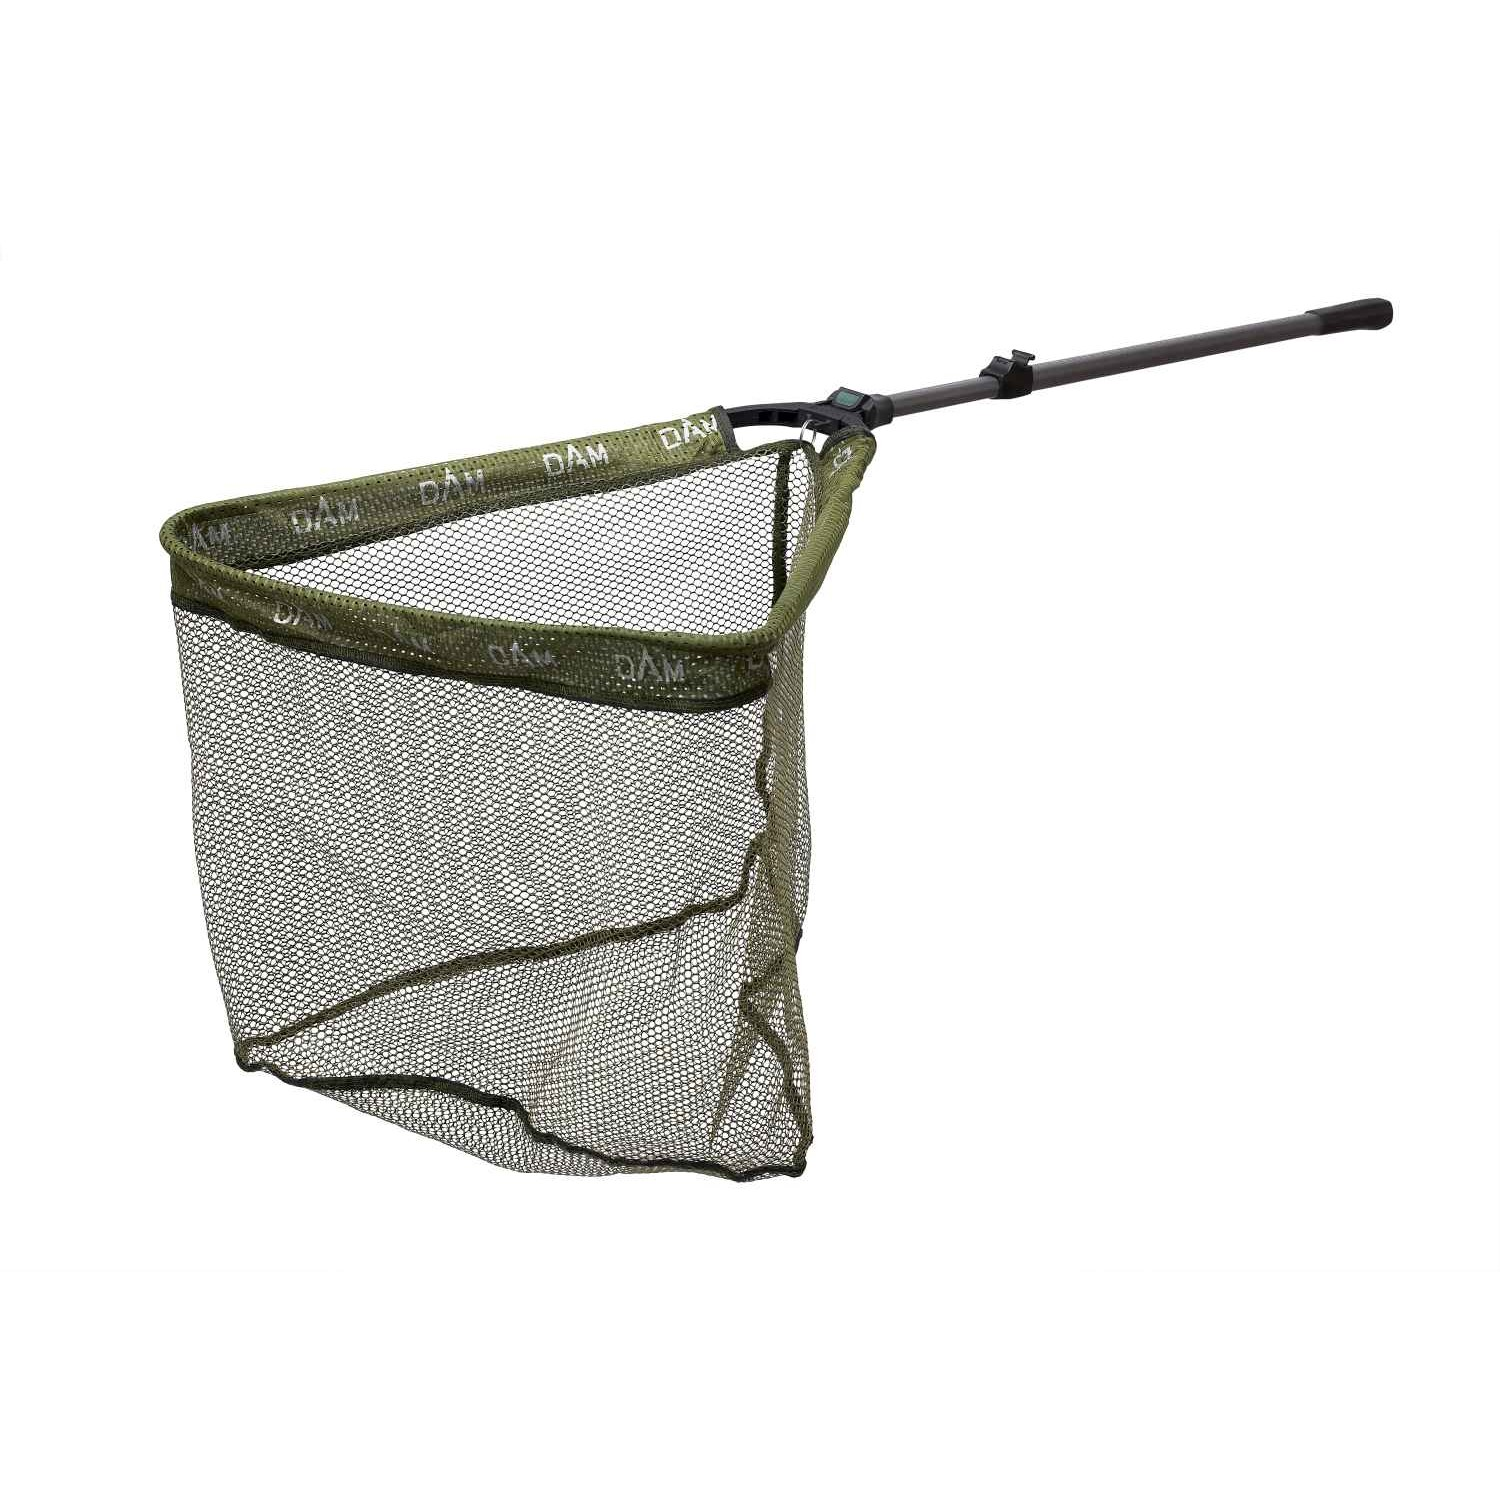 DAM Crosspower Landing Net